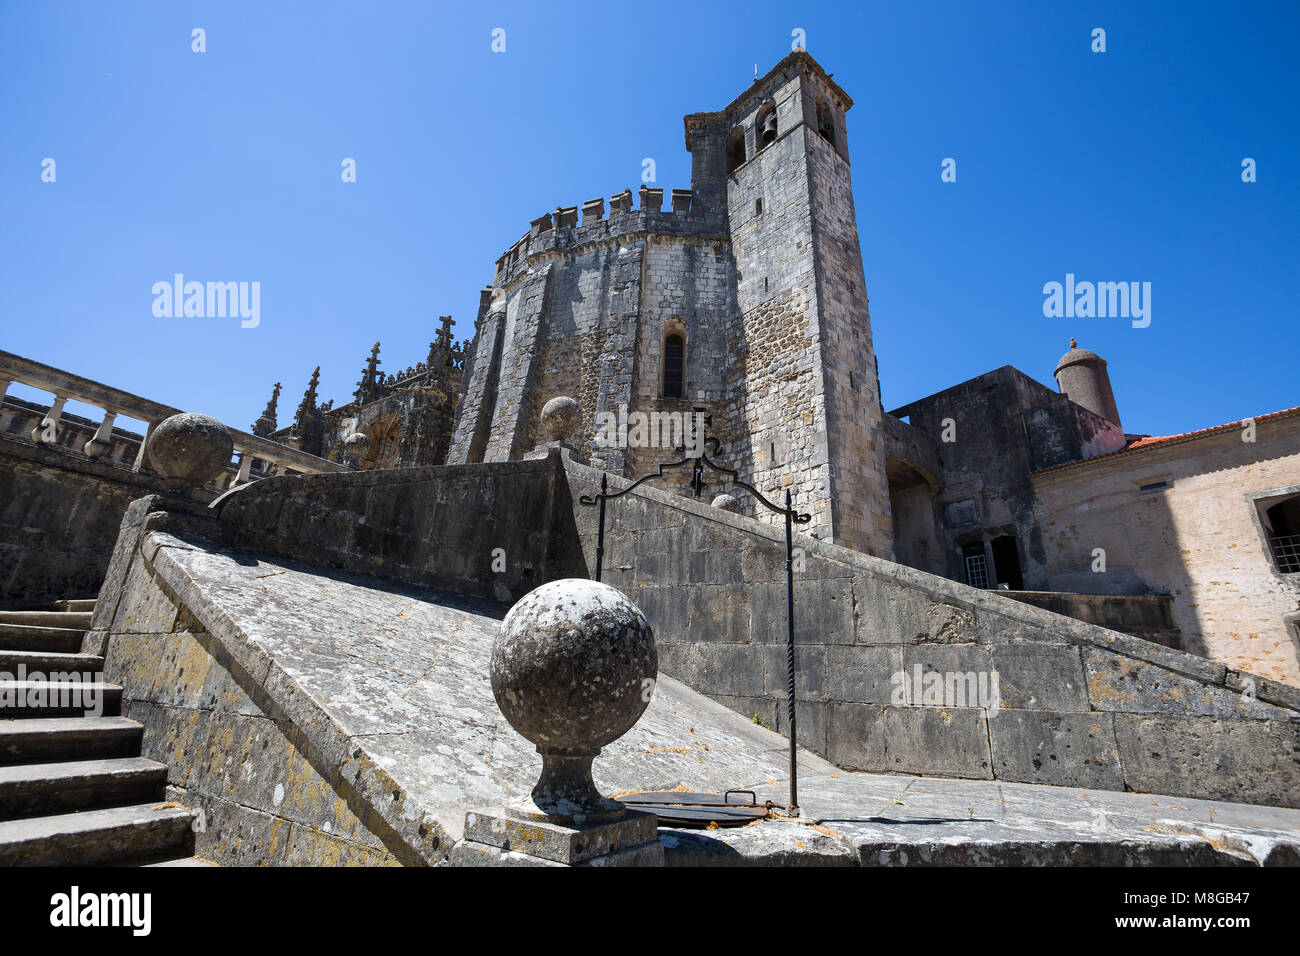 Tomar, Portugal - June 18, 2016: Top of Dom Joao III Cloister (Renaissance masterpiece) in the Templar Convent of - Stock Image